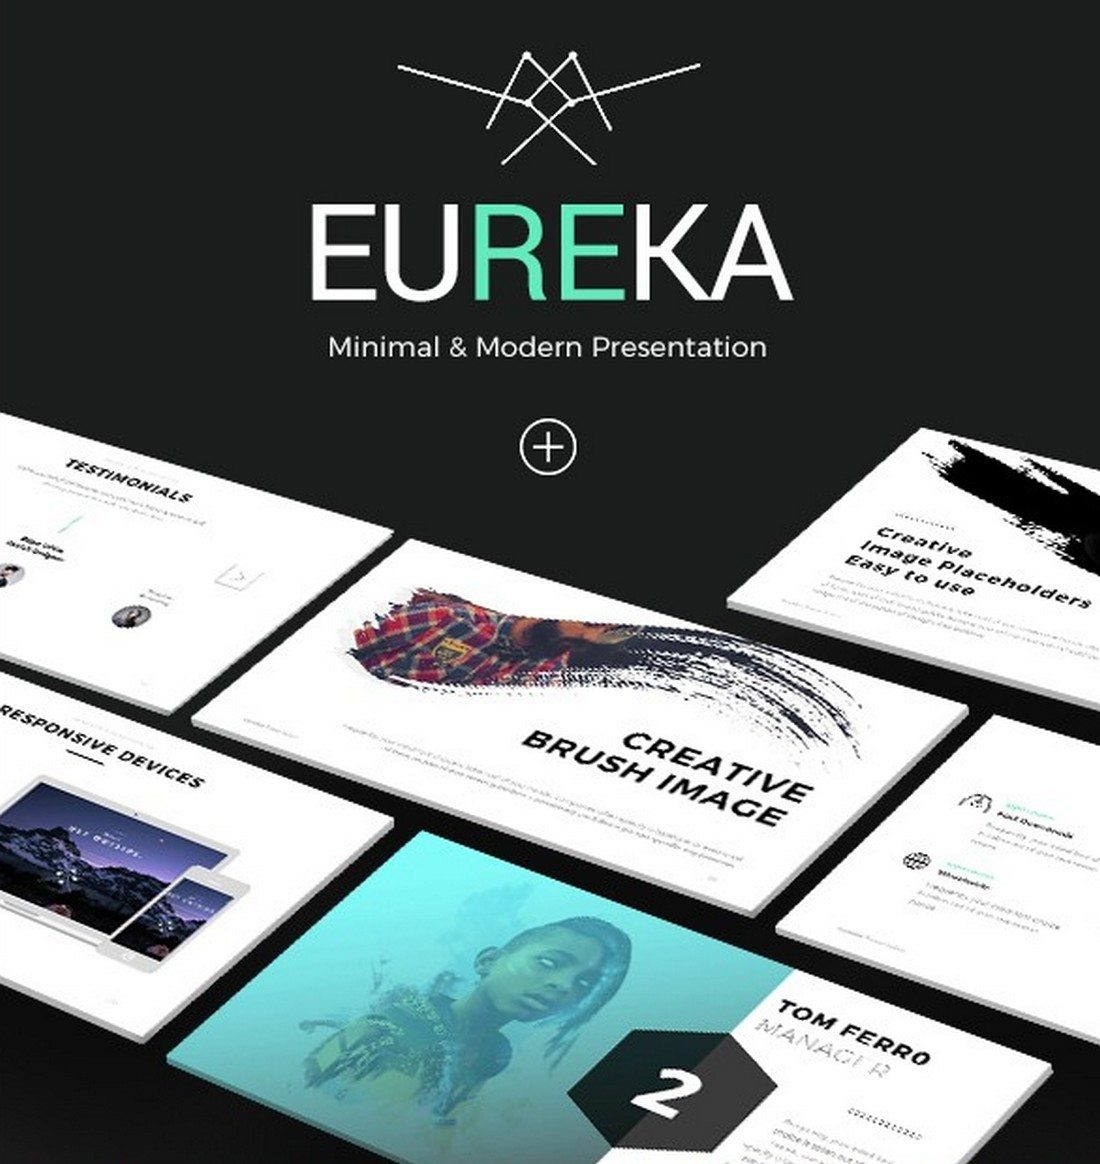 eureka-1 30+ Best Keynote Templates of 2018 design tips